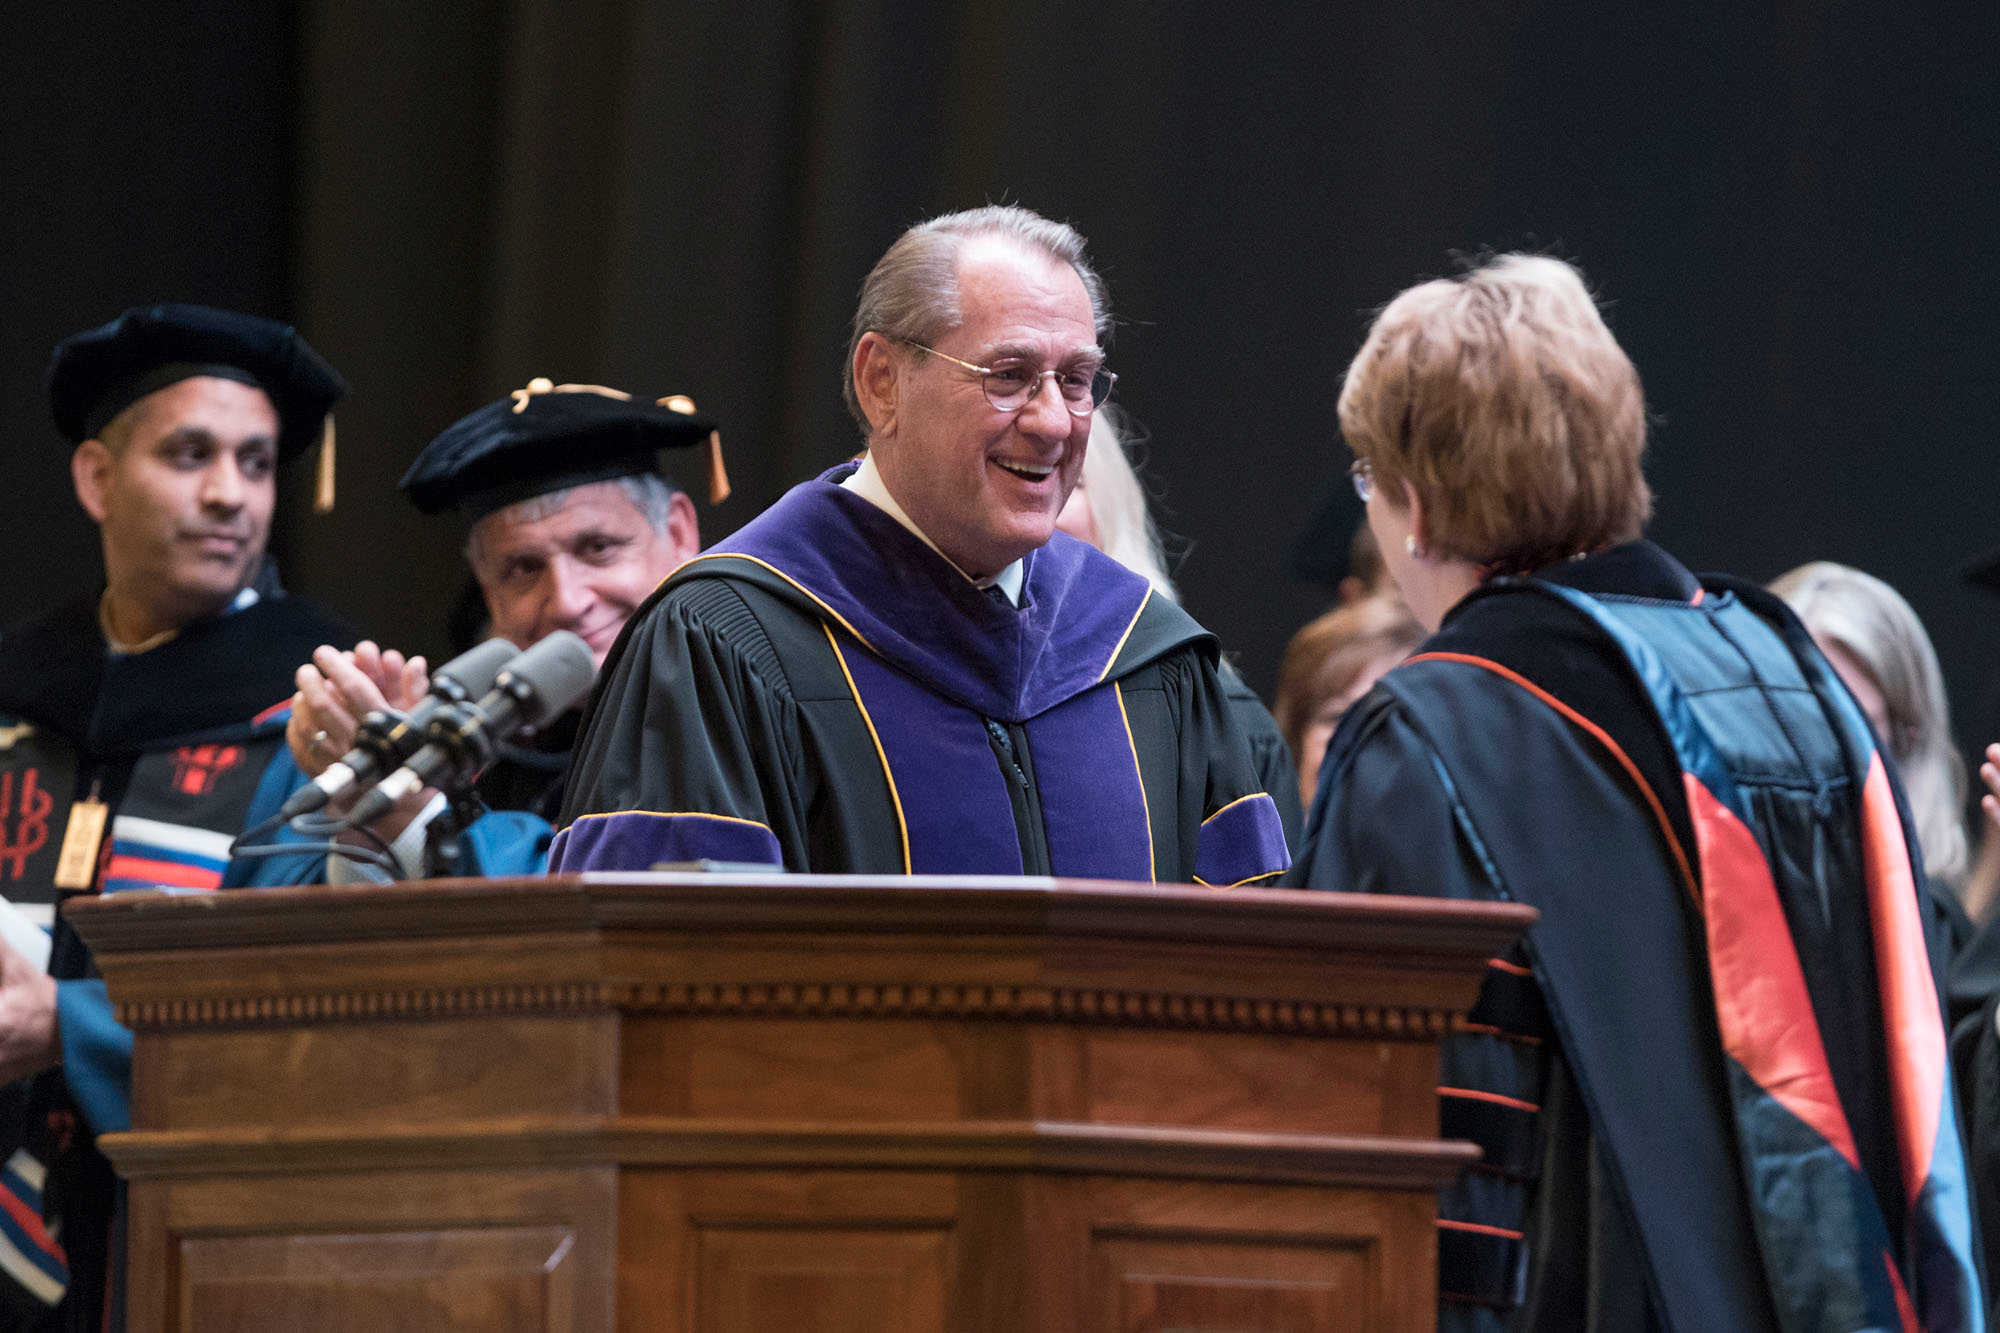 Former Law School Dean John Jeffries shakes hands with University President Teresa A. Sullivan after receiving the Thomas Jefferson Award for Scholarship.